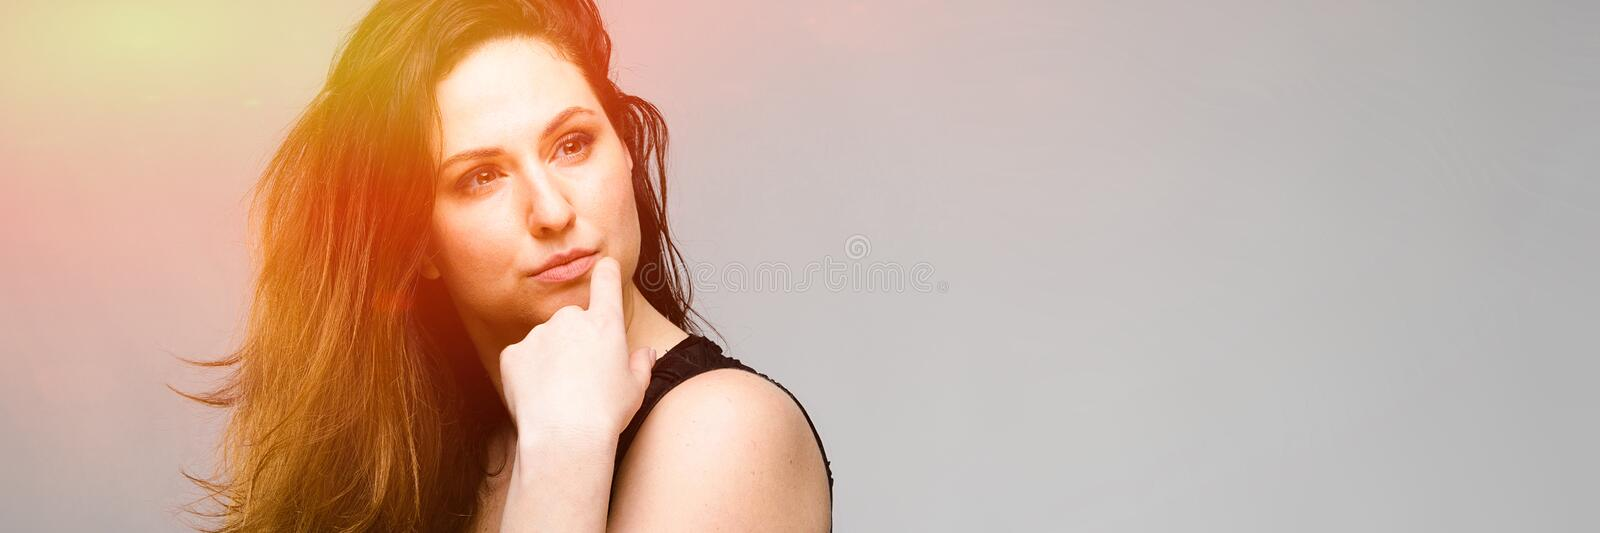 Emotional pretty confident cute plus size model standing in studio showing her beauty on gray background royalty free stock photo